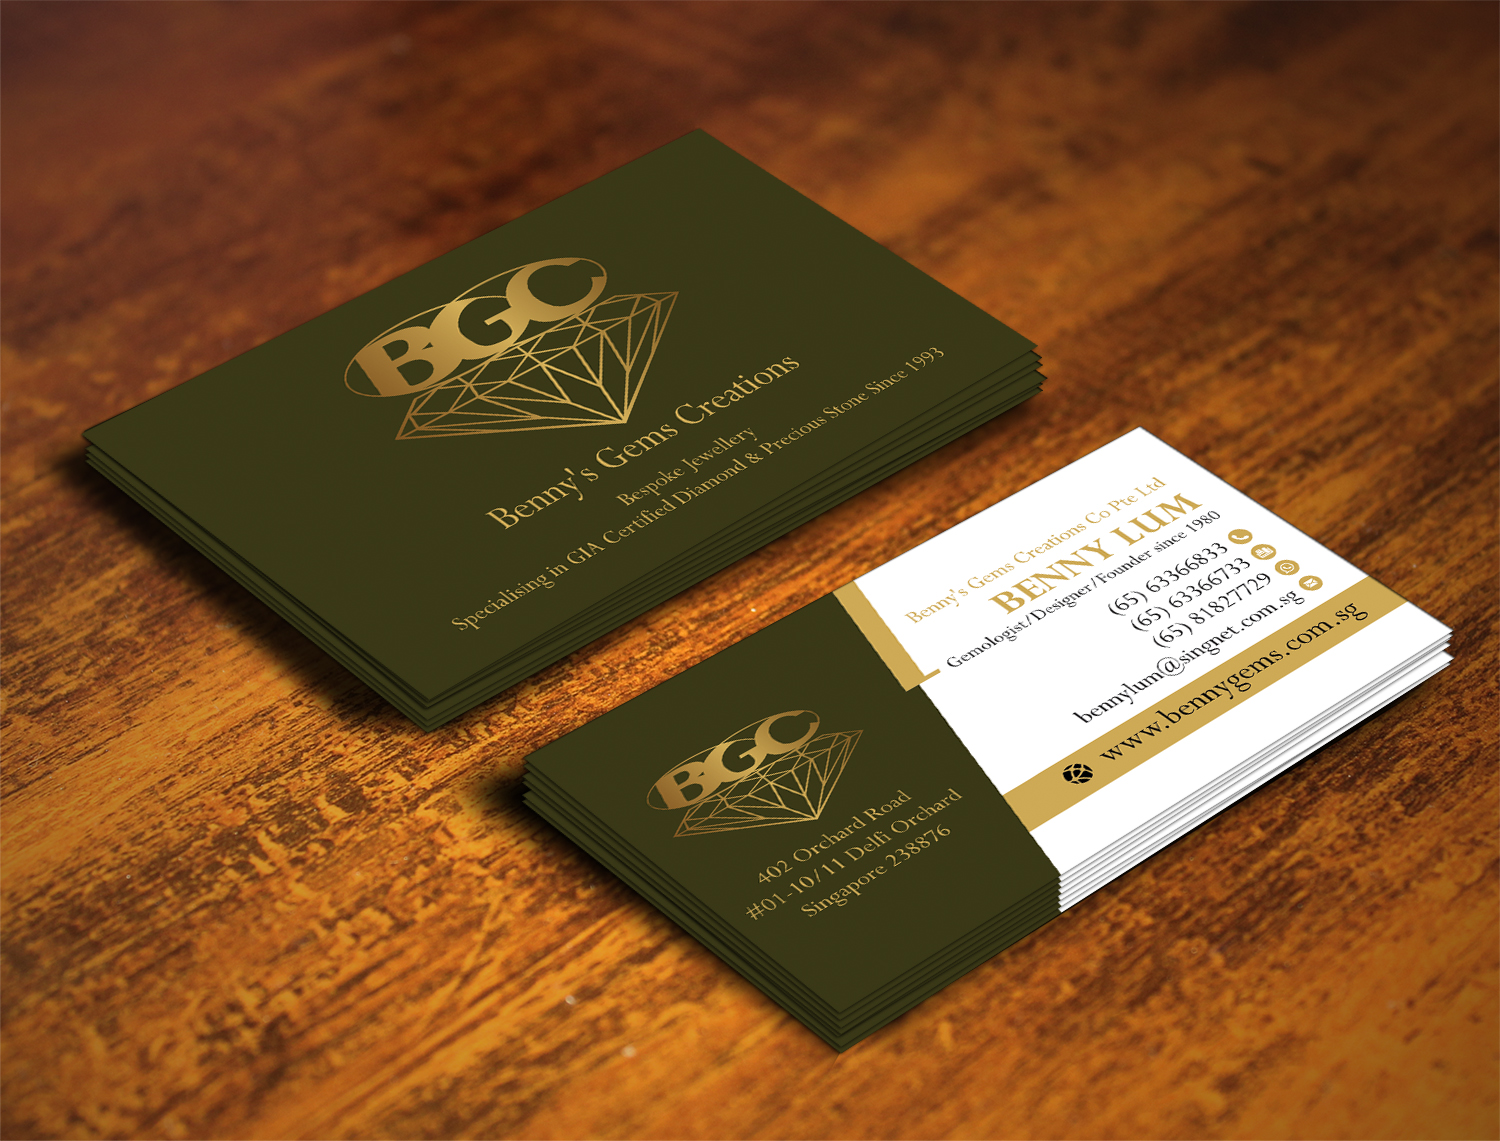 Professional upmarket jewelry store business card design for a business card design by alhemique1 for this project design 12695856 reheart Gallery